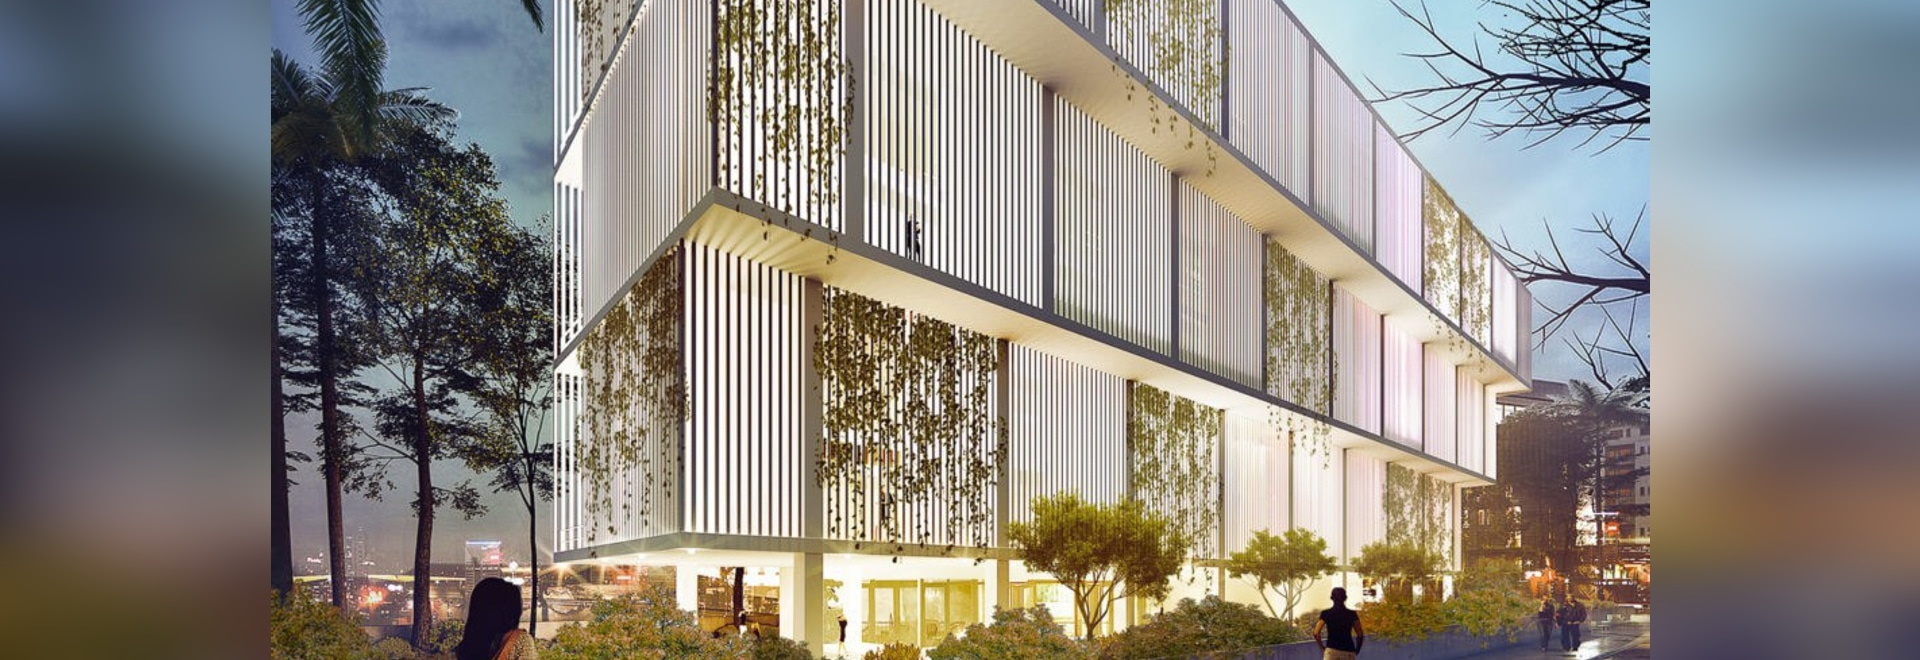 Naturally cooled Otunba Offices has a small footprint but a large social impact